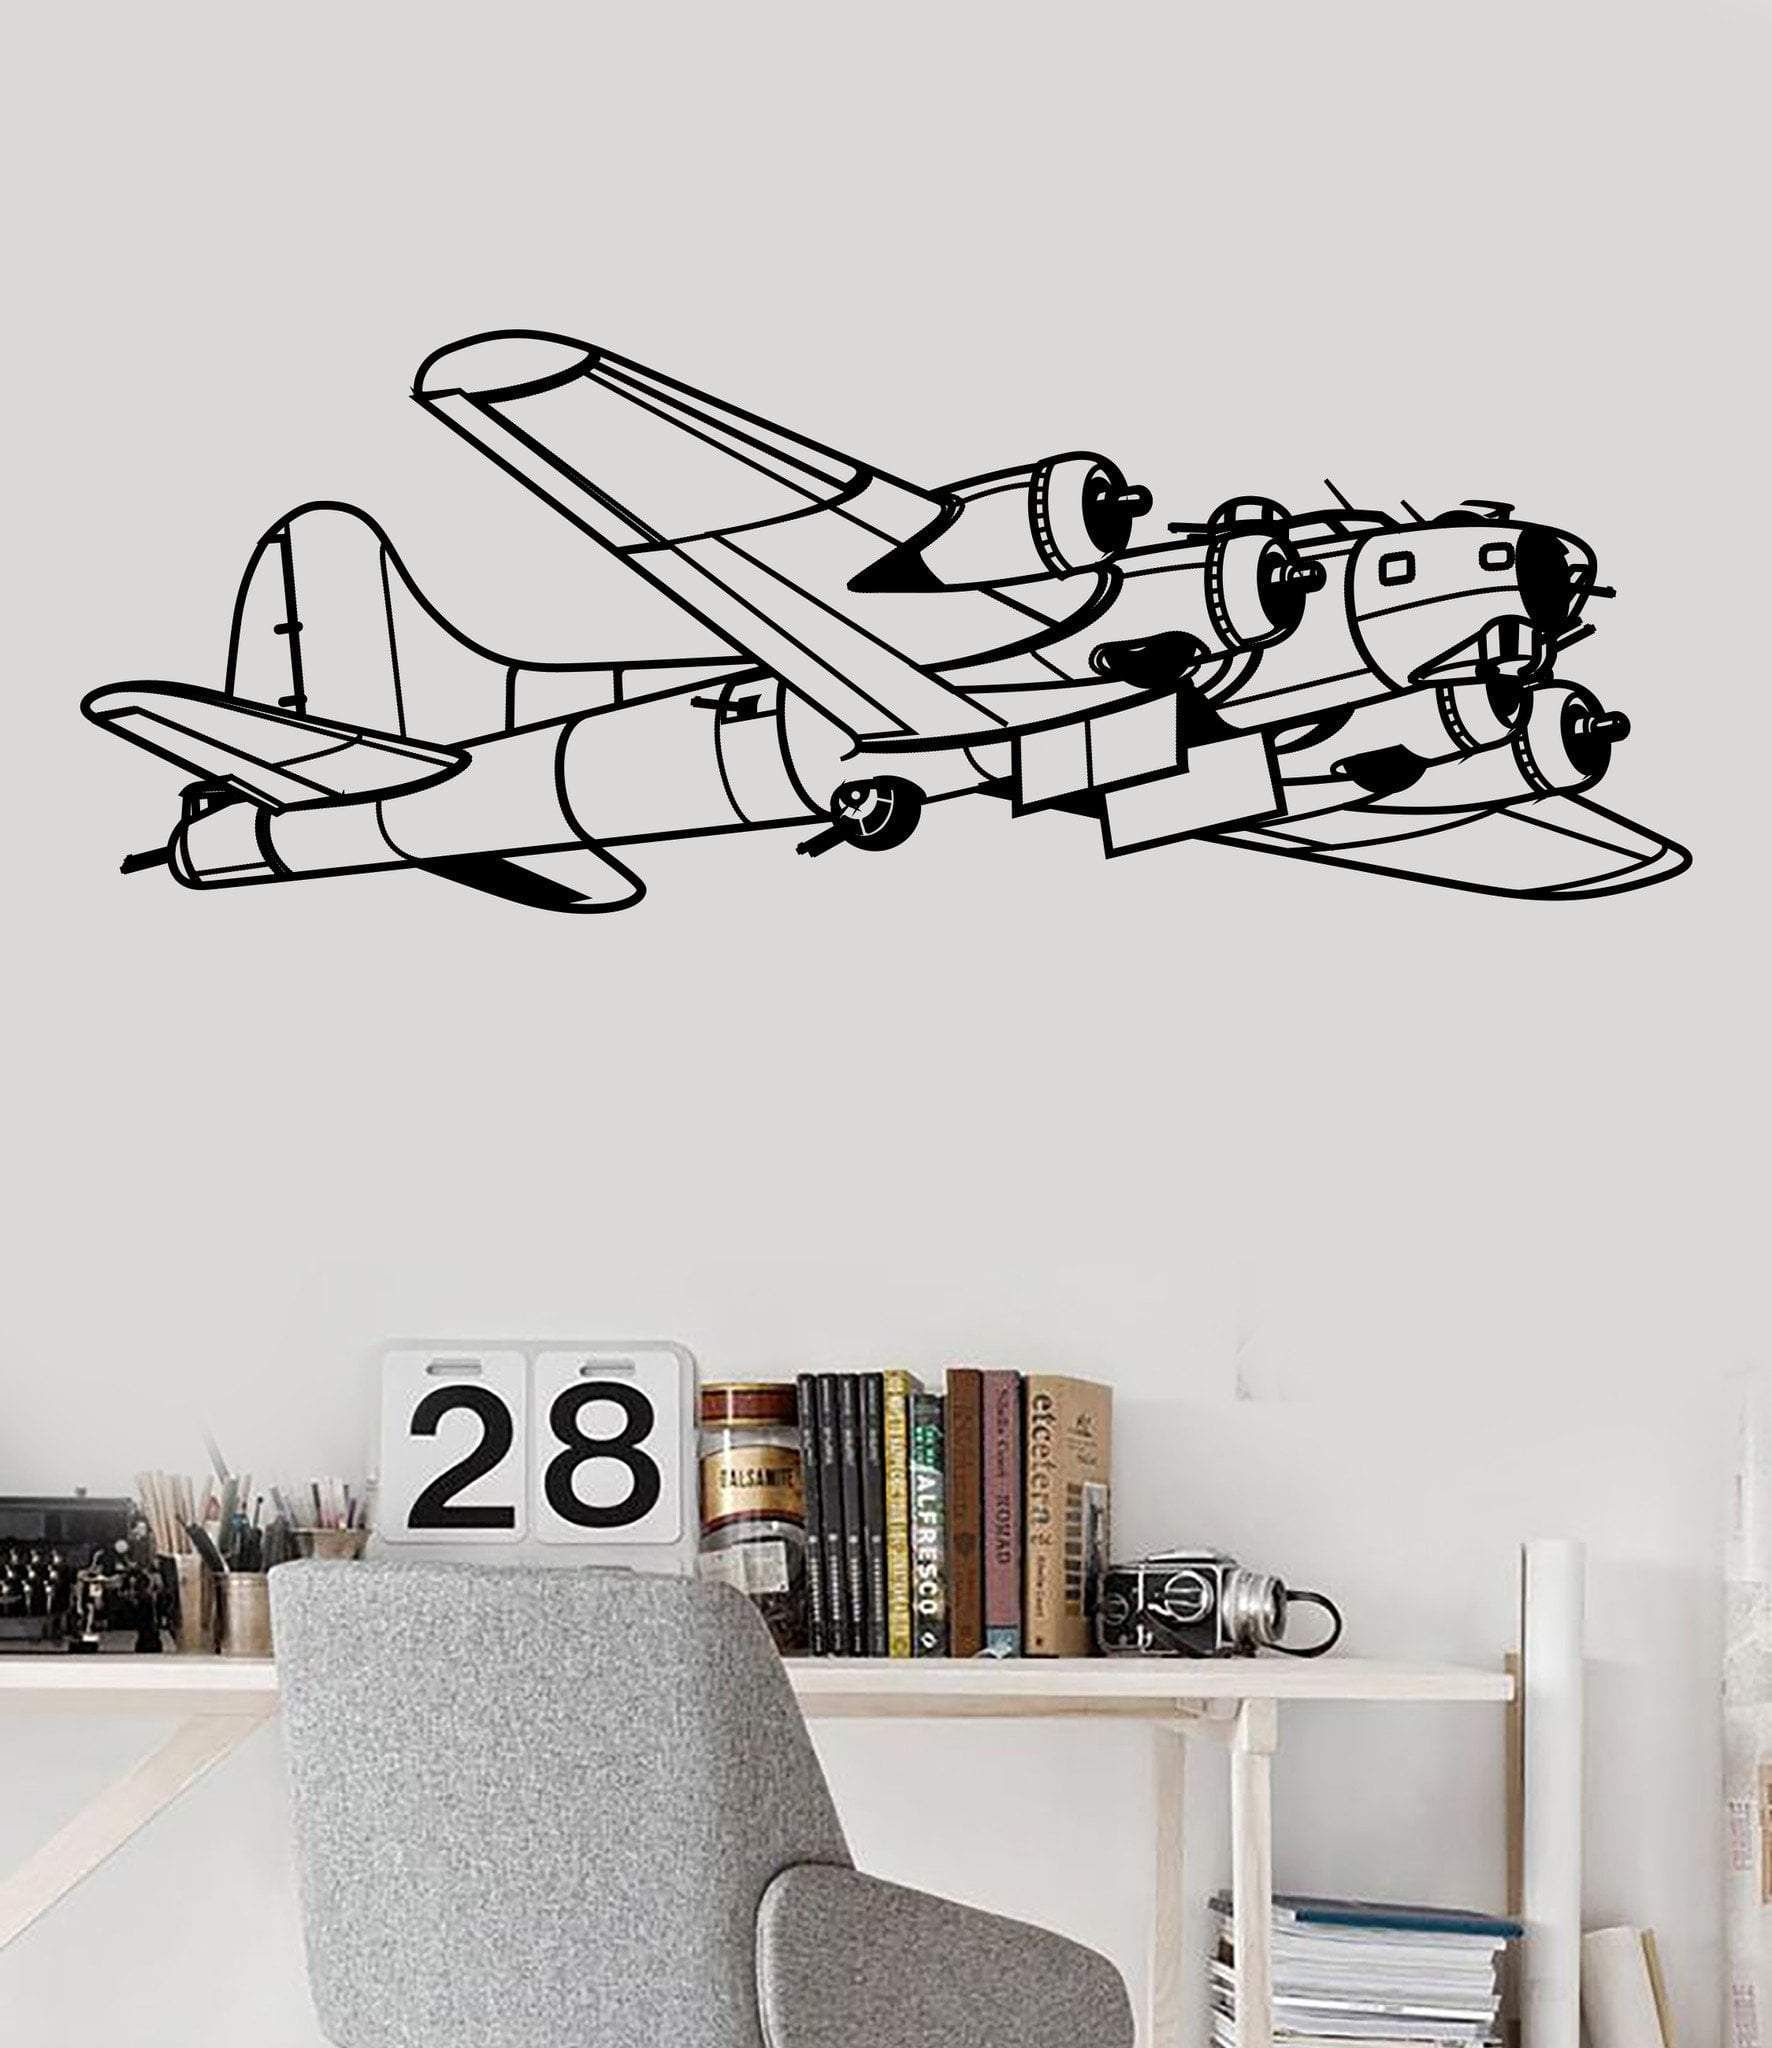 Vinyl Wall Stickers Aircraft Aviation Military Air Force